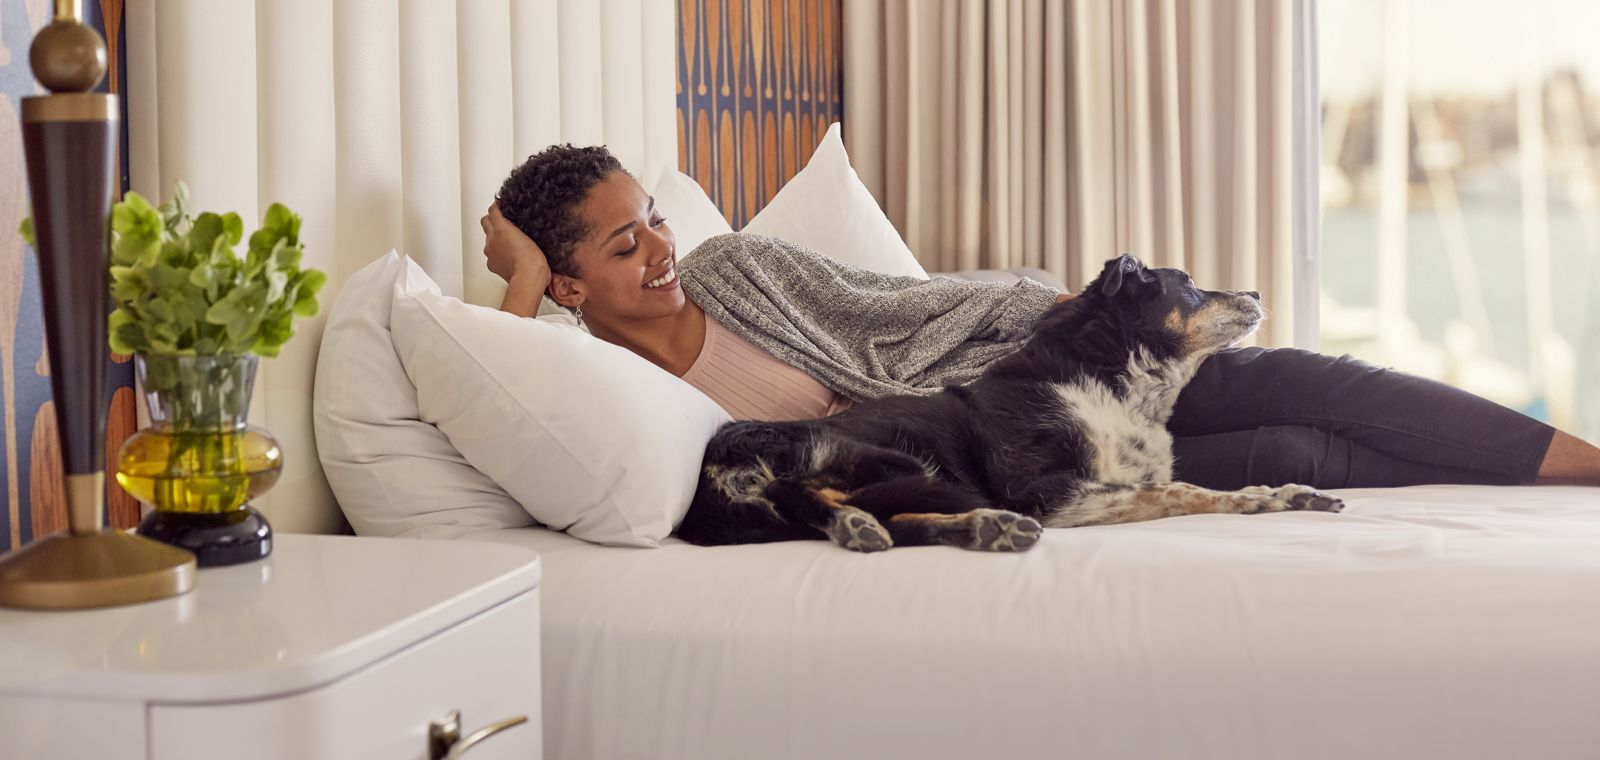 Waterfront-Hotel-Balcony-Lifestyle.tif